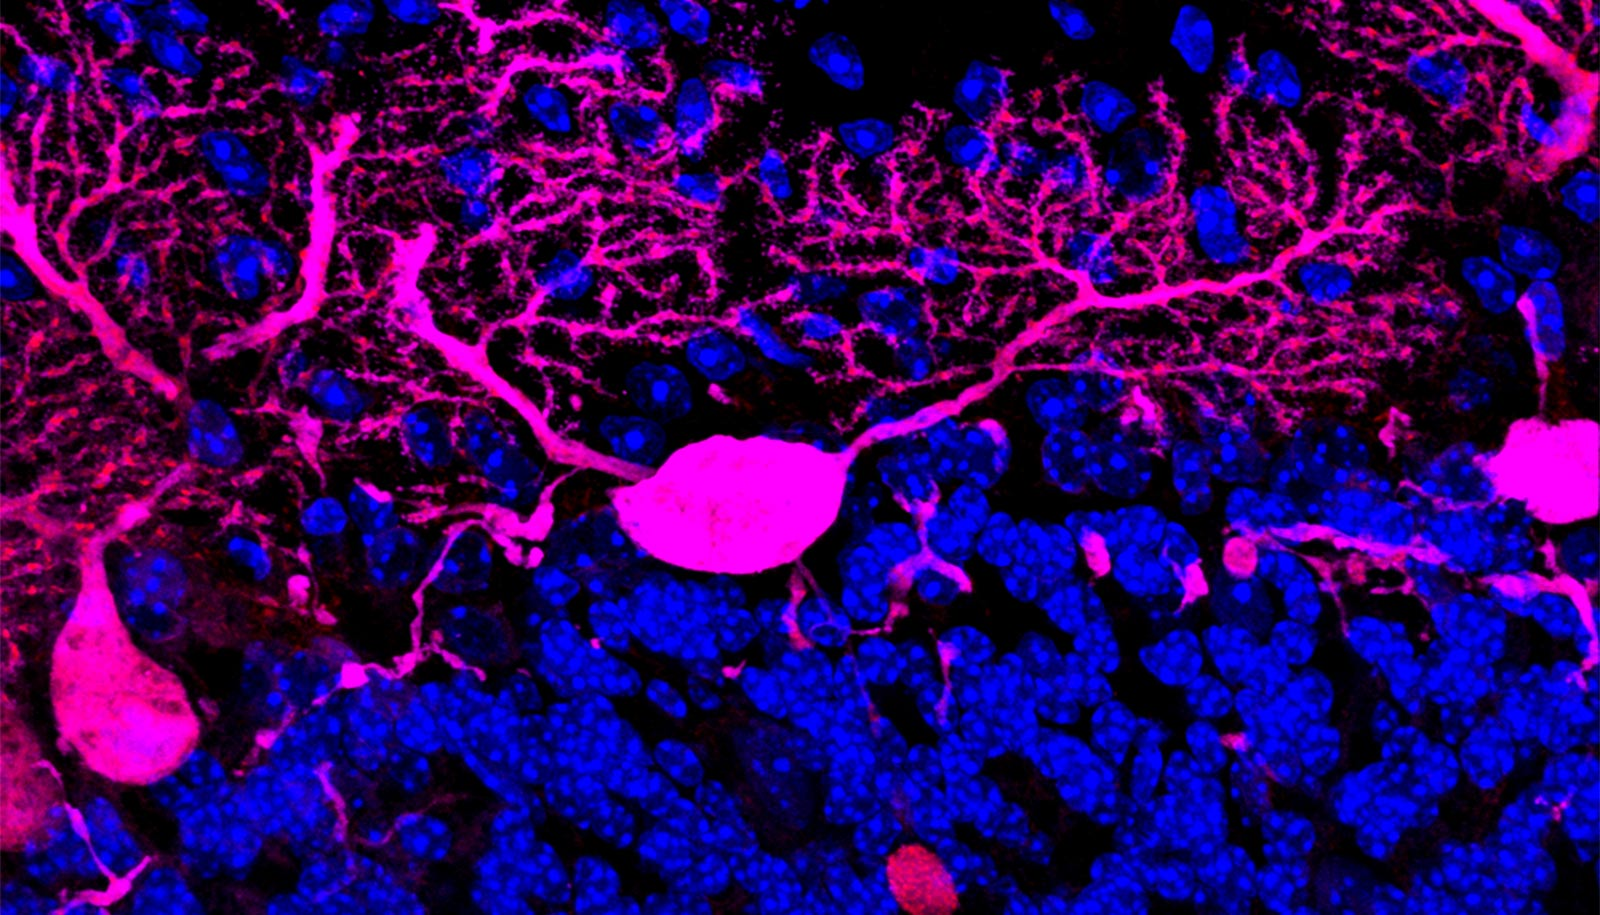 Long tendril-like neurons show up pink against a black background